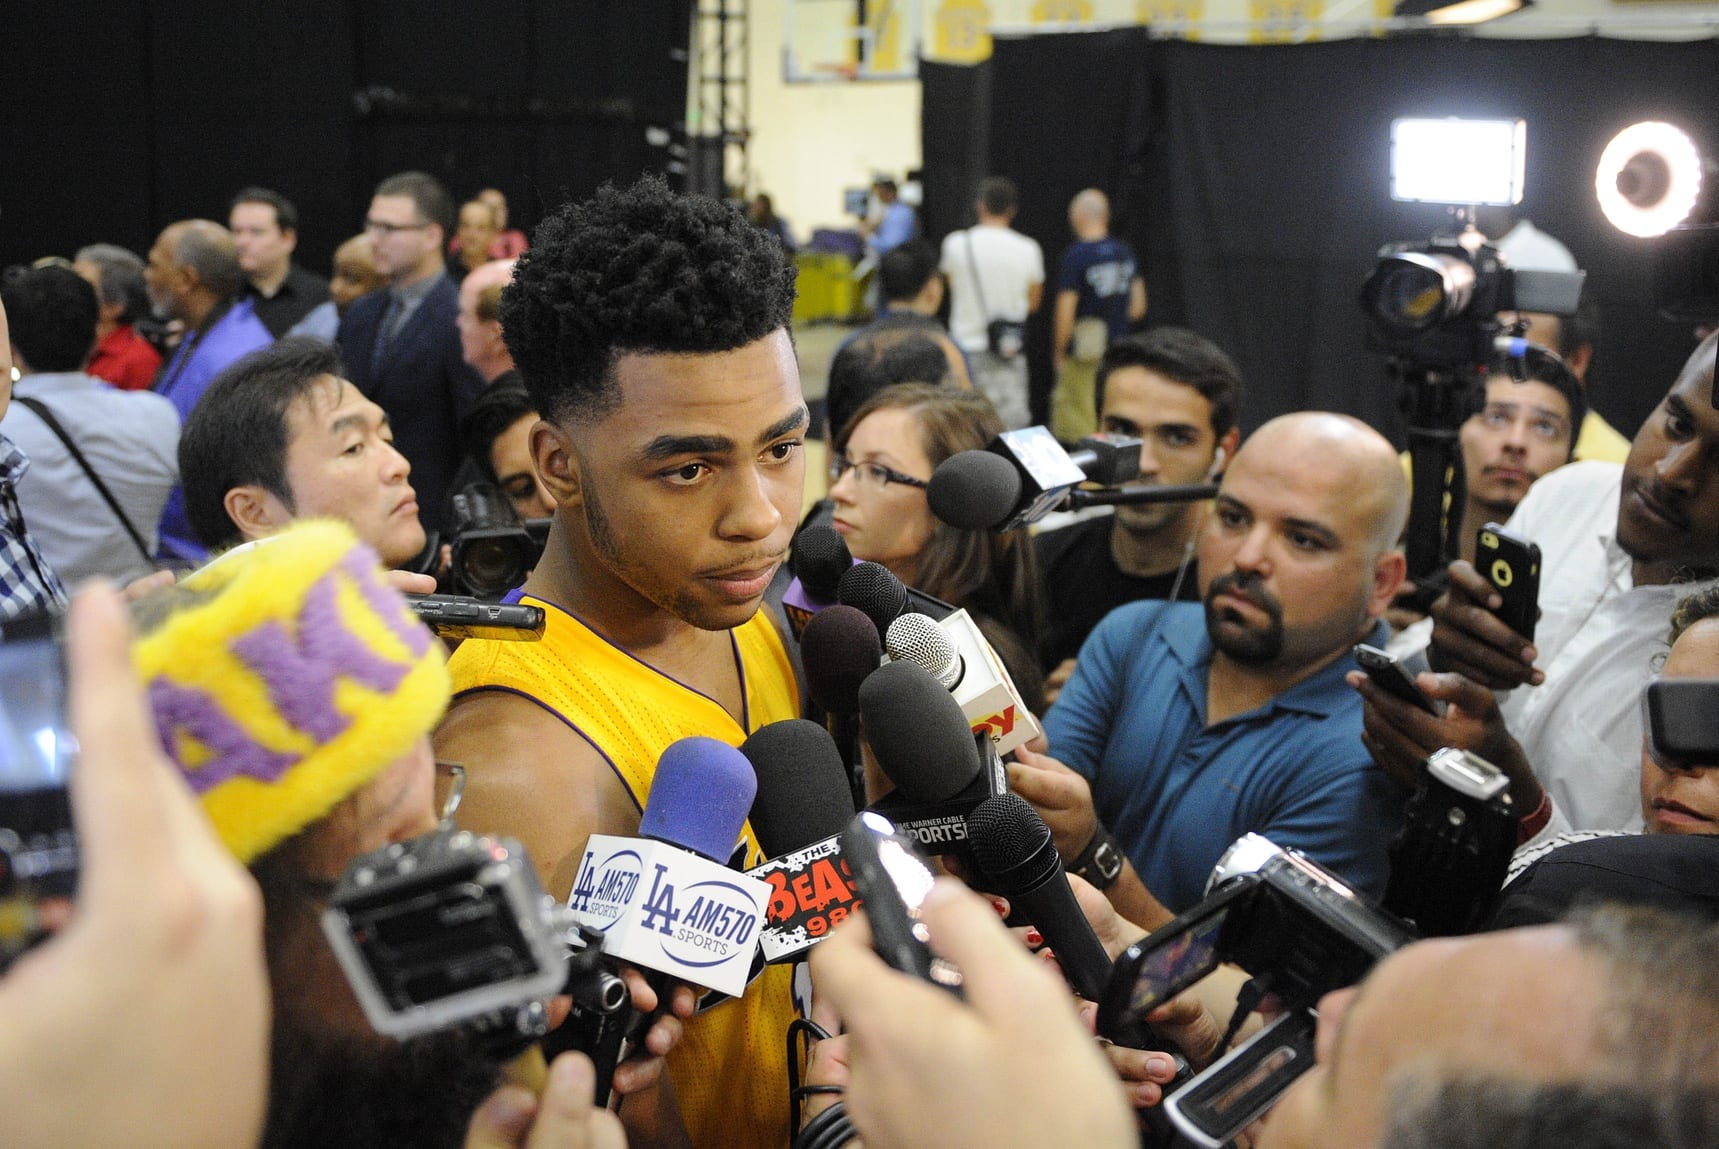 D'angelo Russell Updates On Glute Injury: 'i Wanted To Get Back Out There'